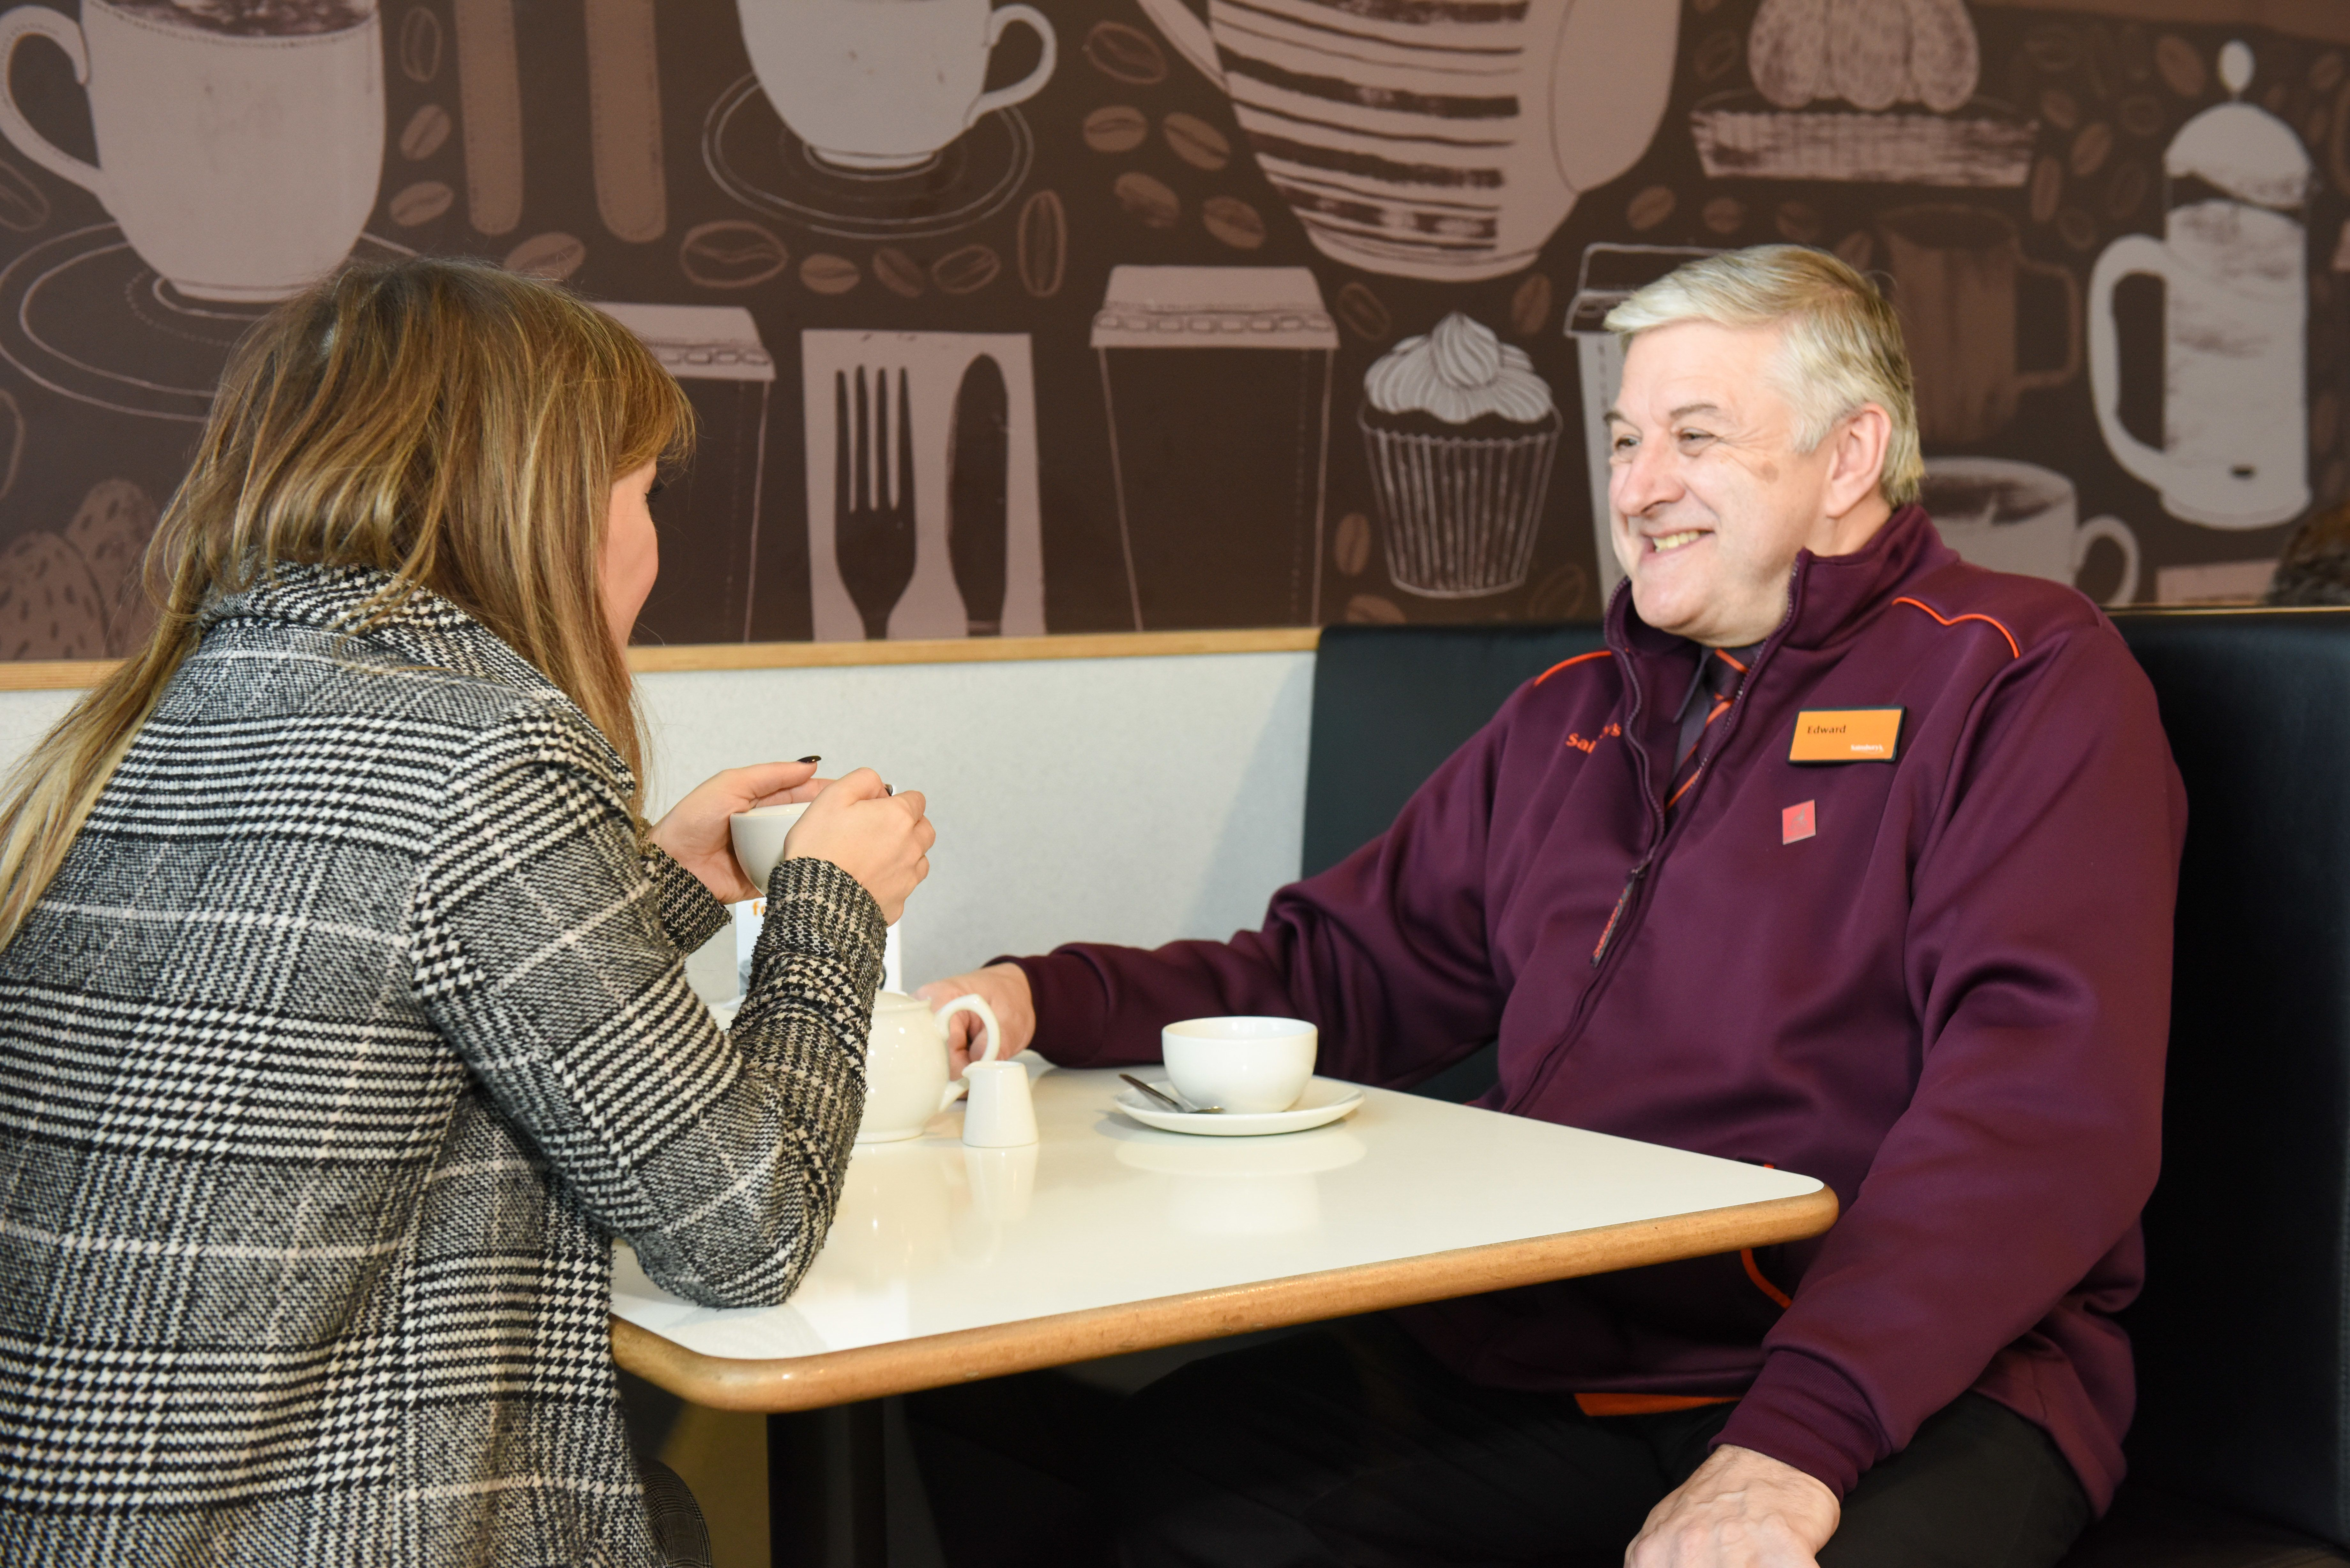 From Co-Op To Costa: 4 Companies With Brilliant Ideas To Tackle The Loneliness